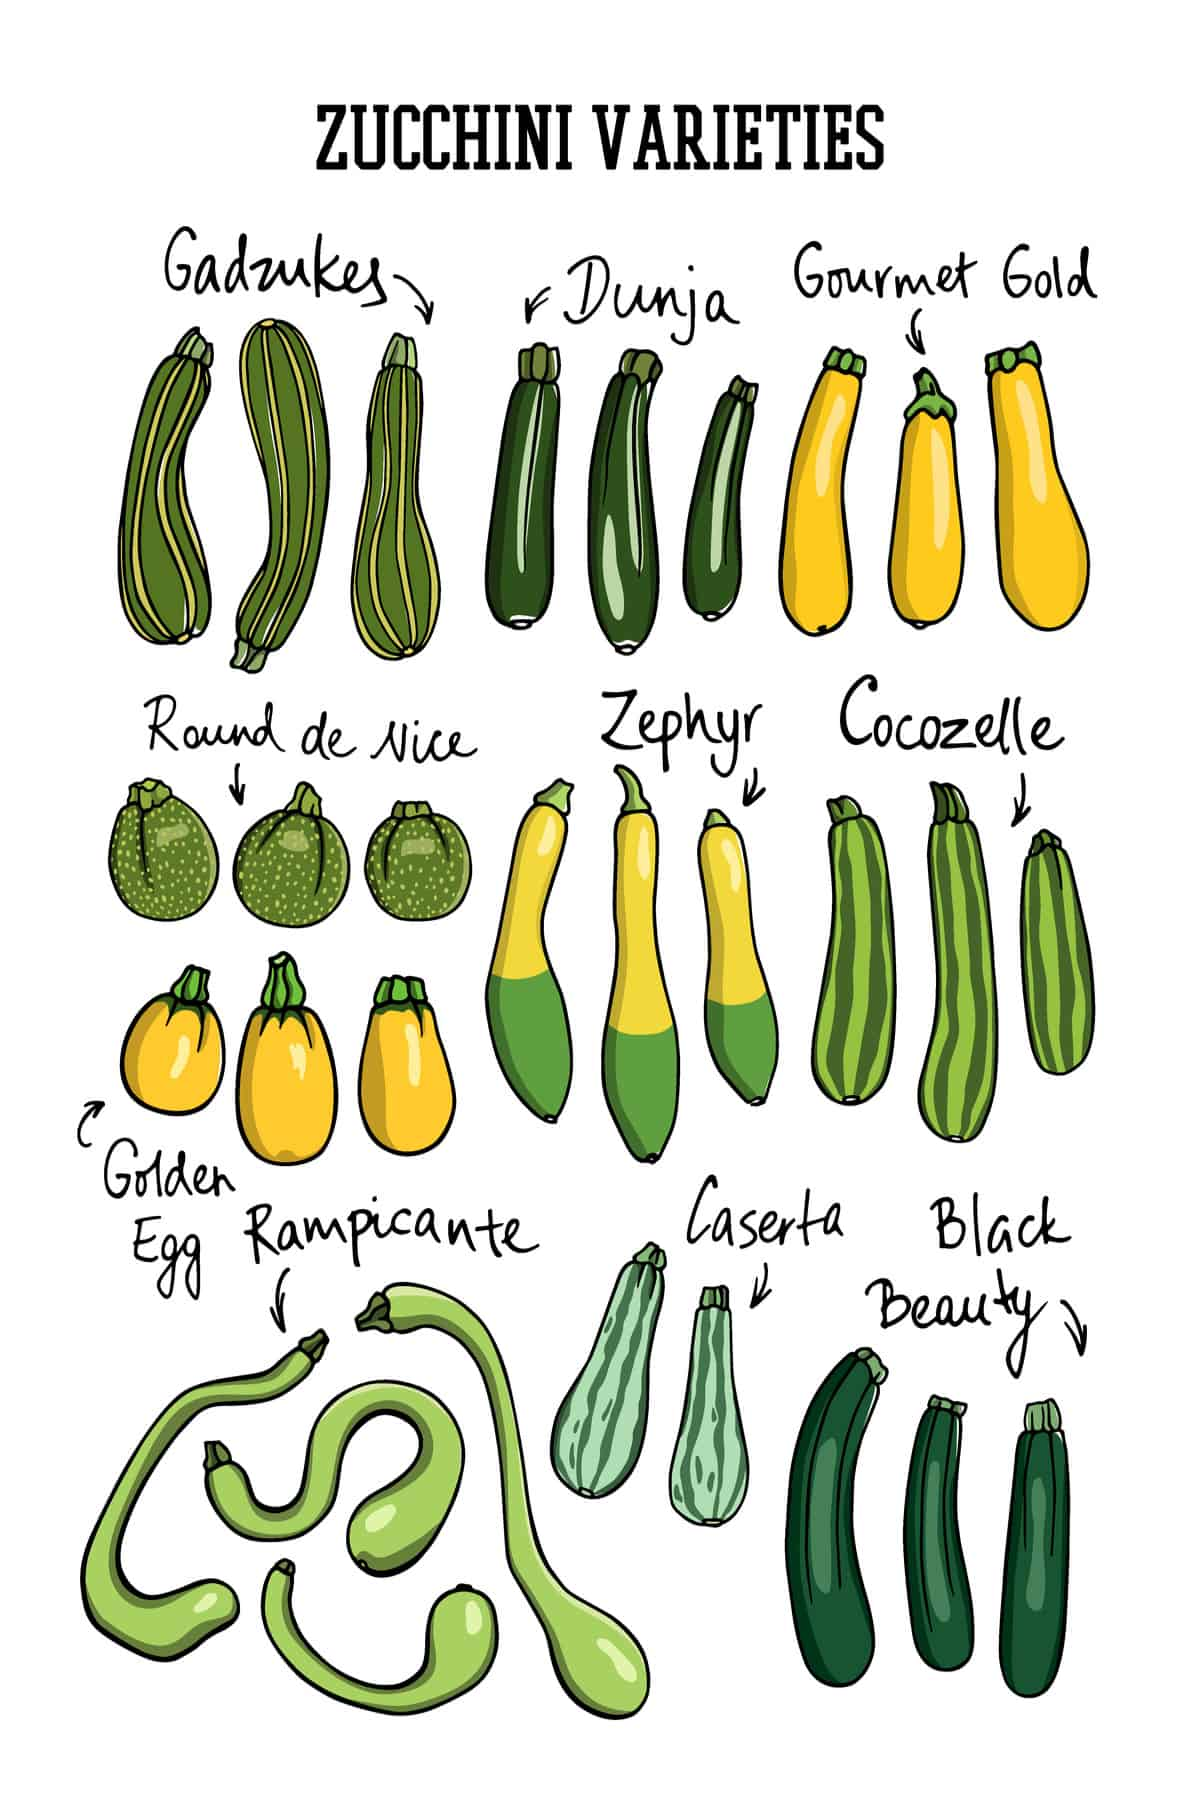 14 Different Types of Zucchini for All Kinds of Dishes